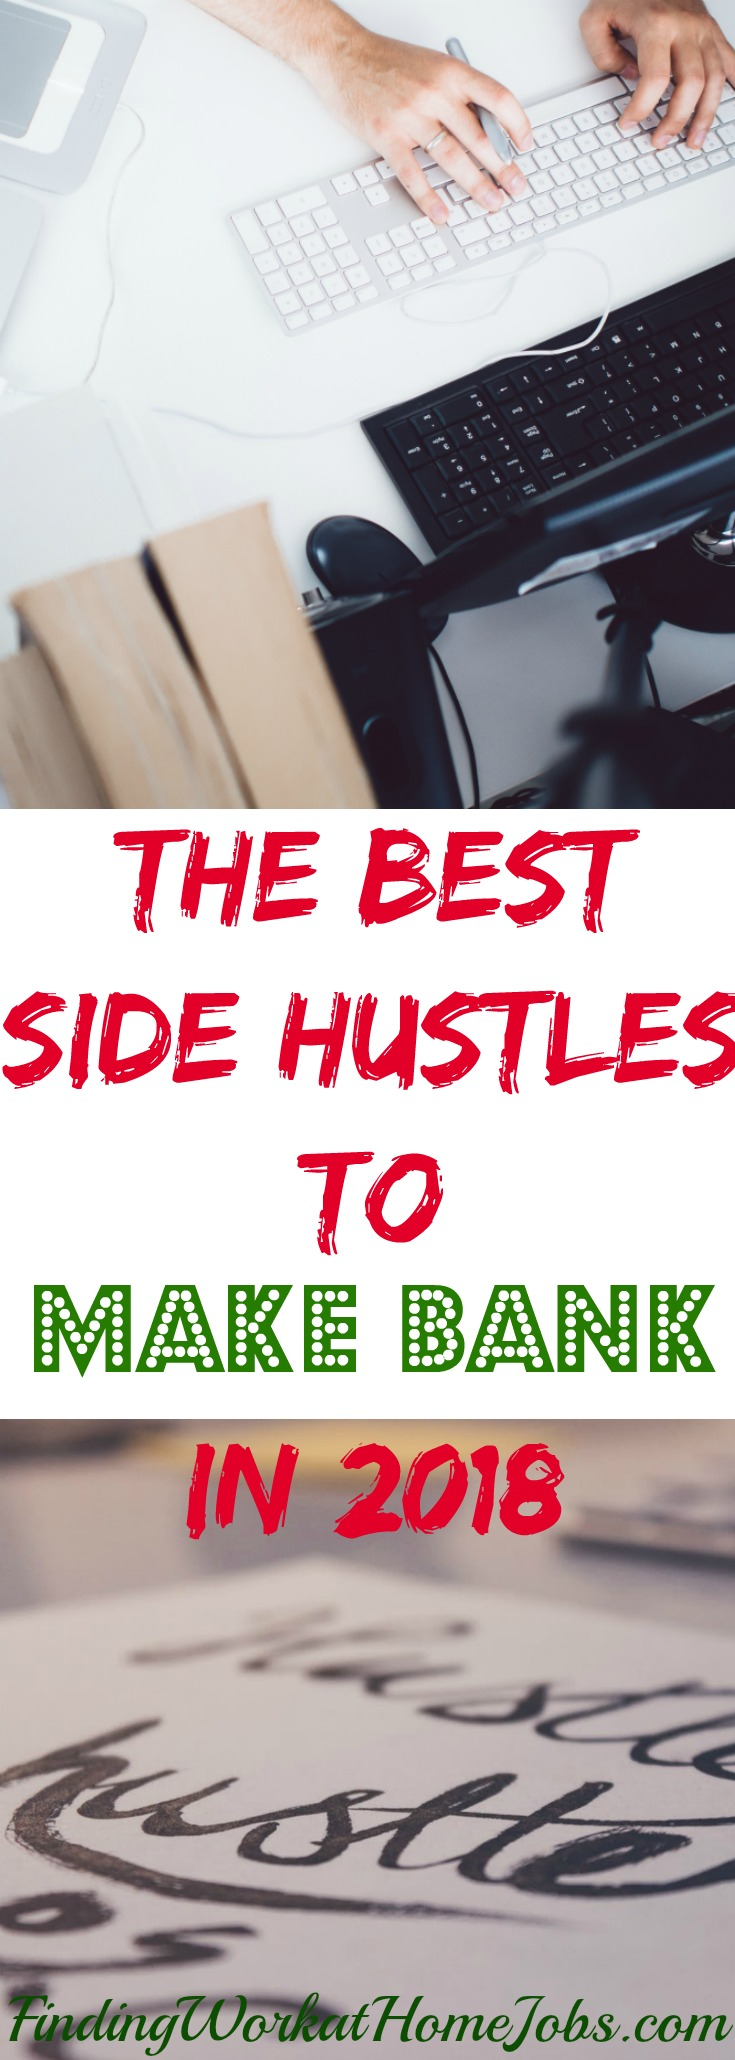 the best side hustles to make bank in 2018